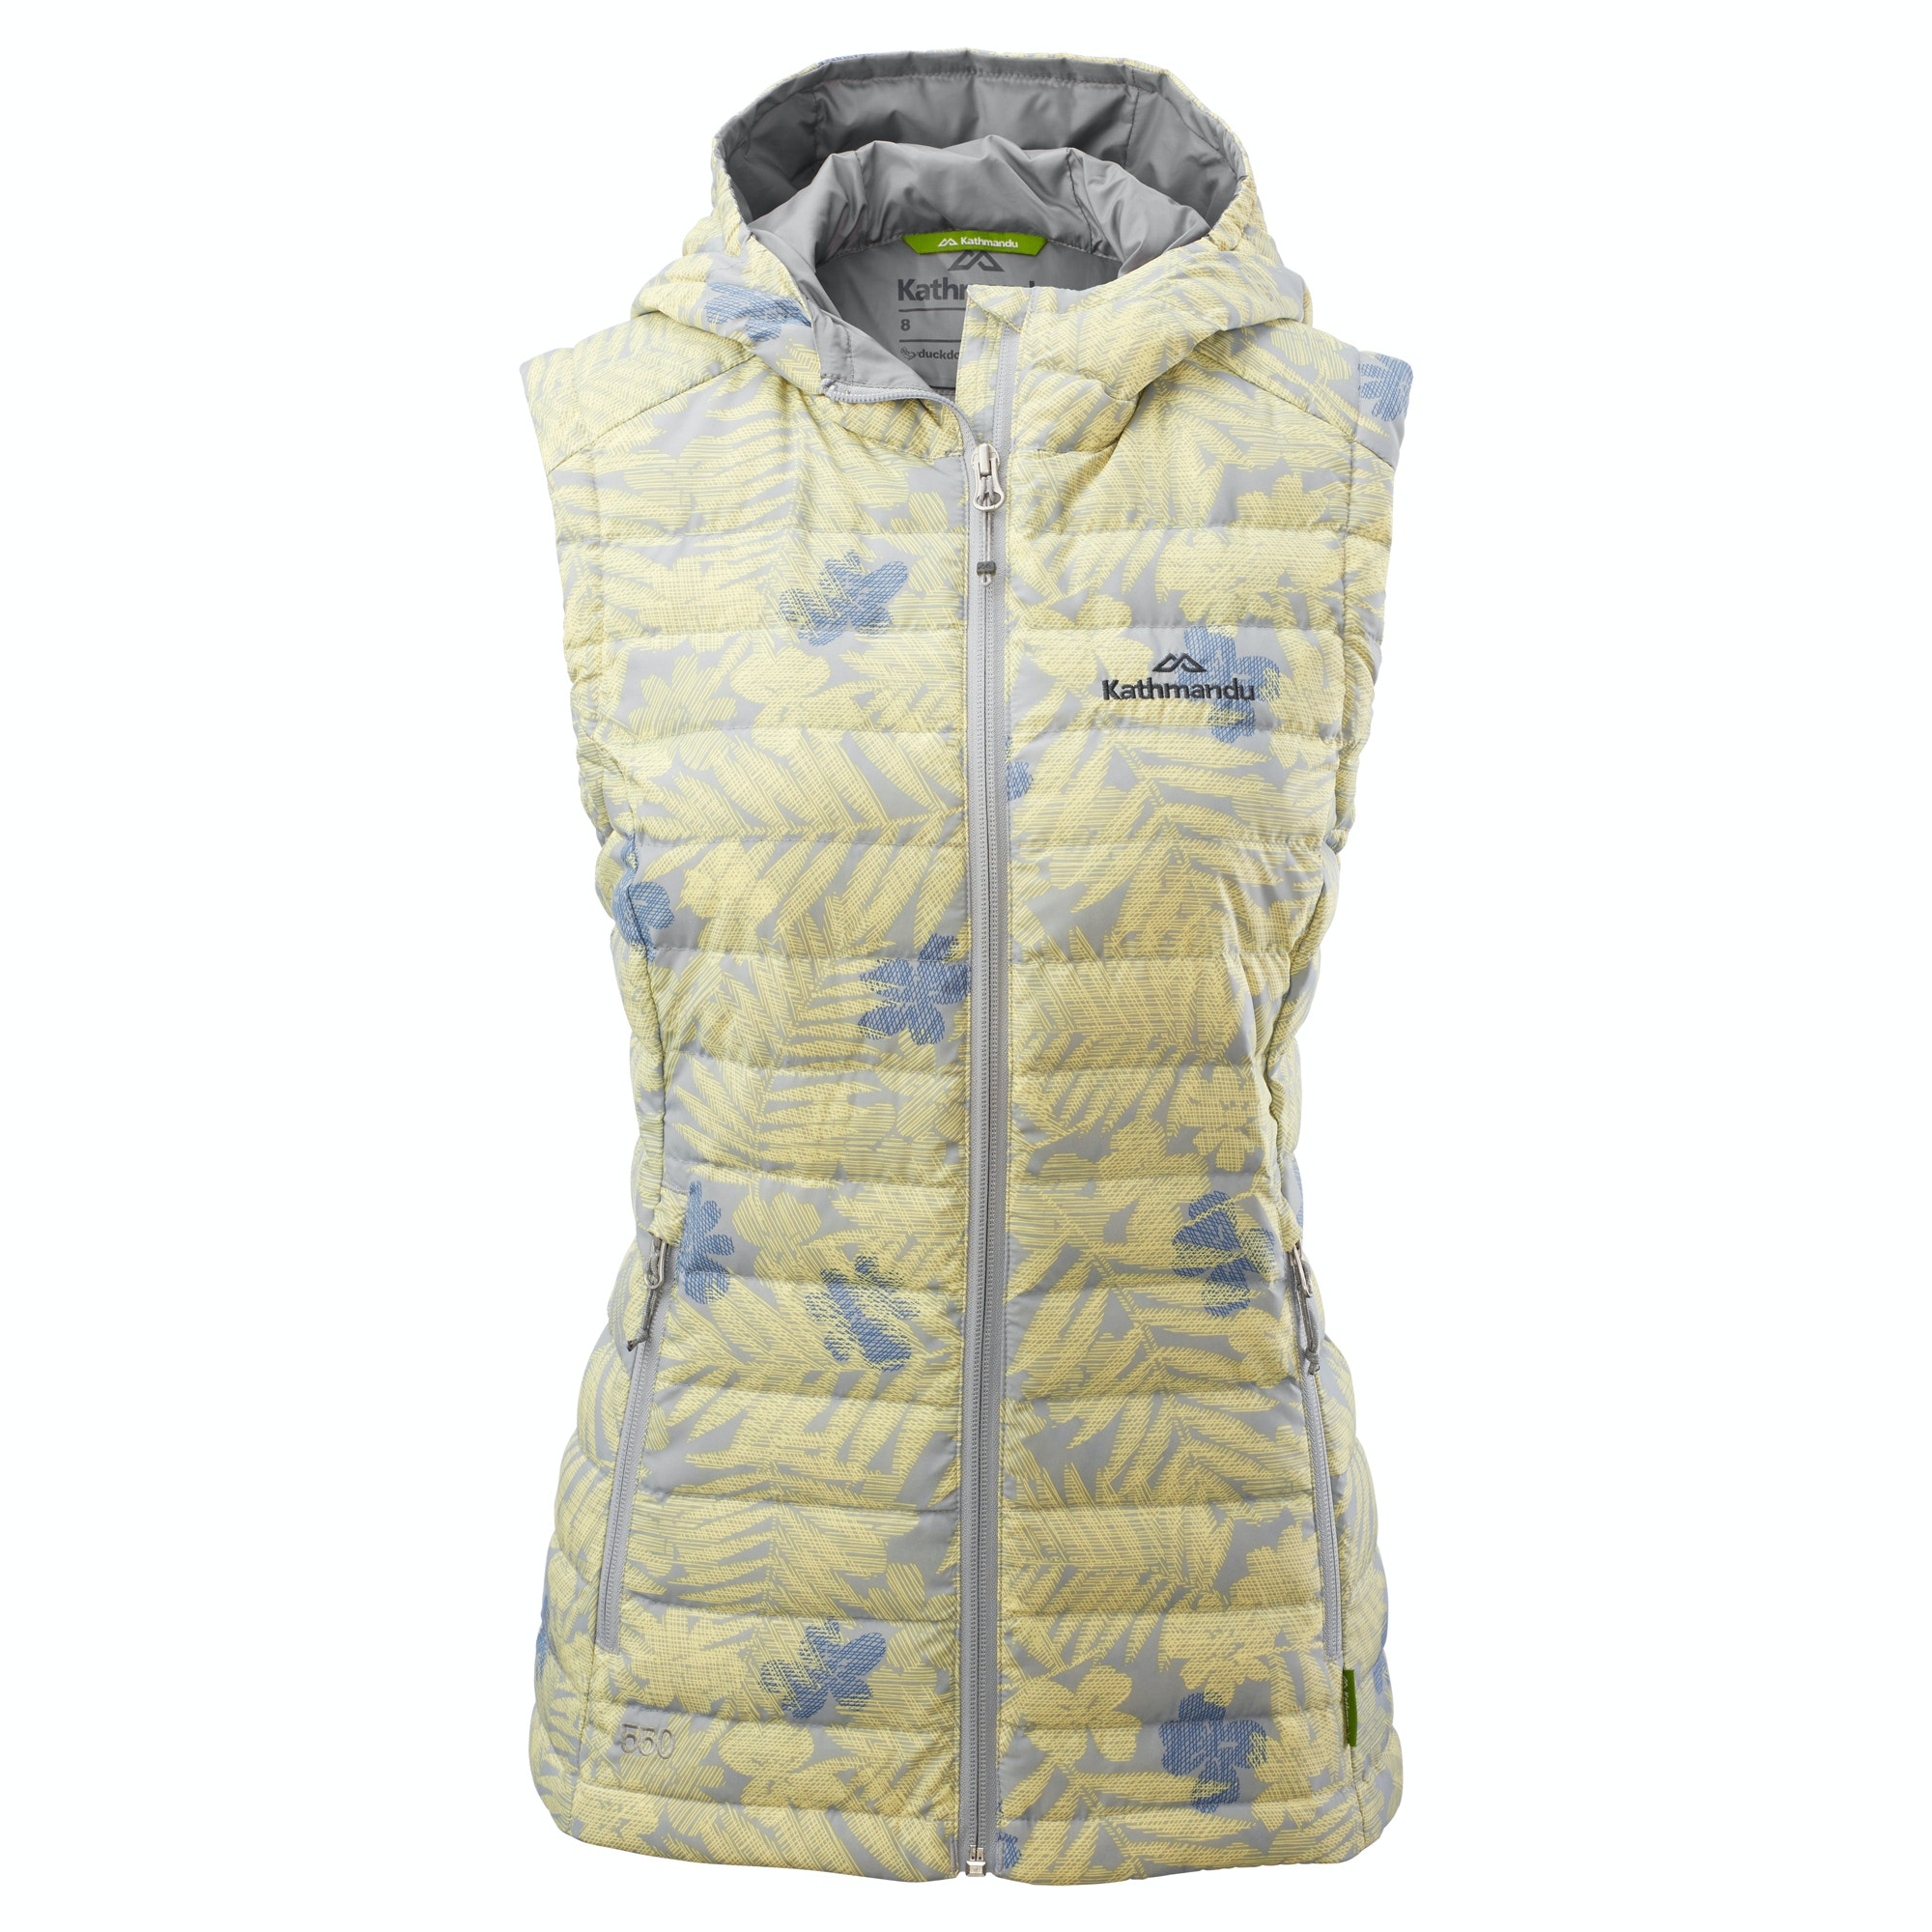 Kathmandu womens heli lightweight down jacket